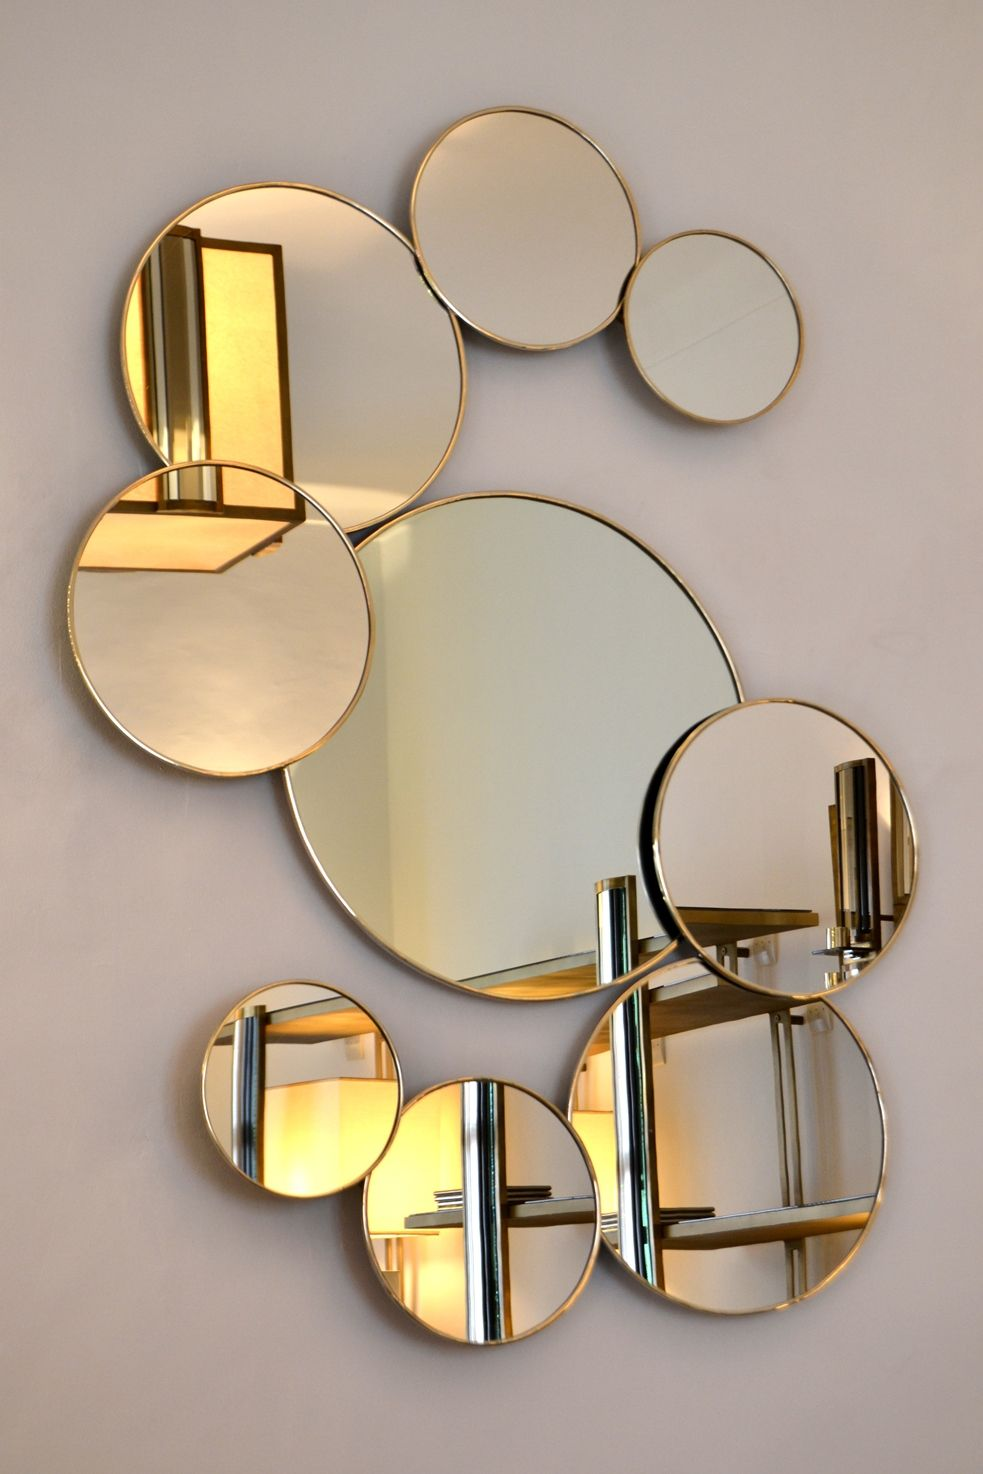 miroir ronds de la collection variance cerclage